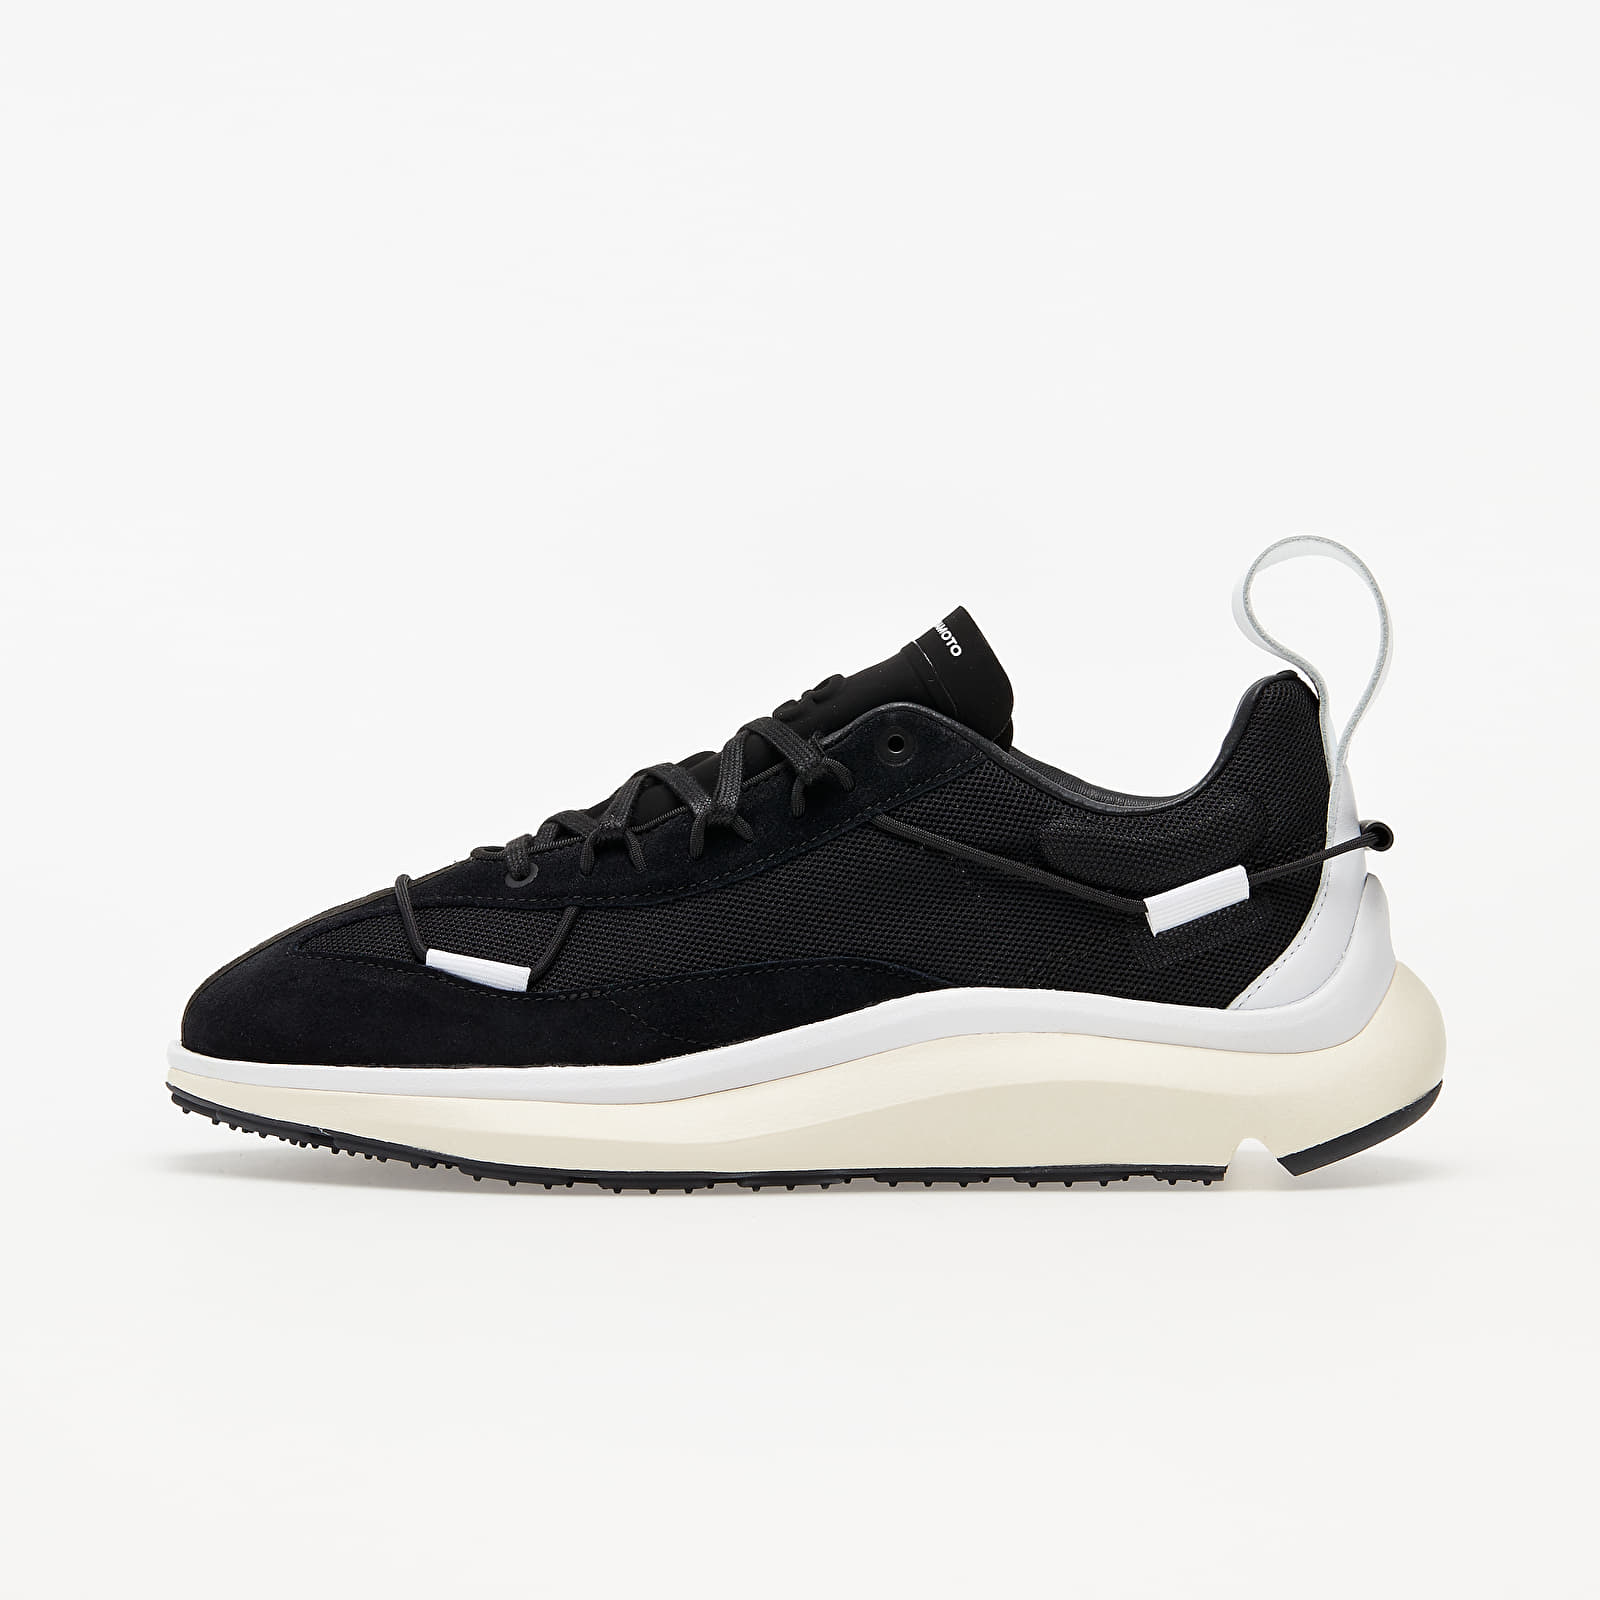 Y-3 Shiku Run Black/ None/ None FX1416